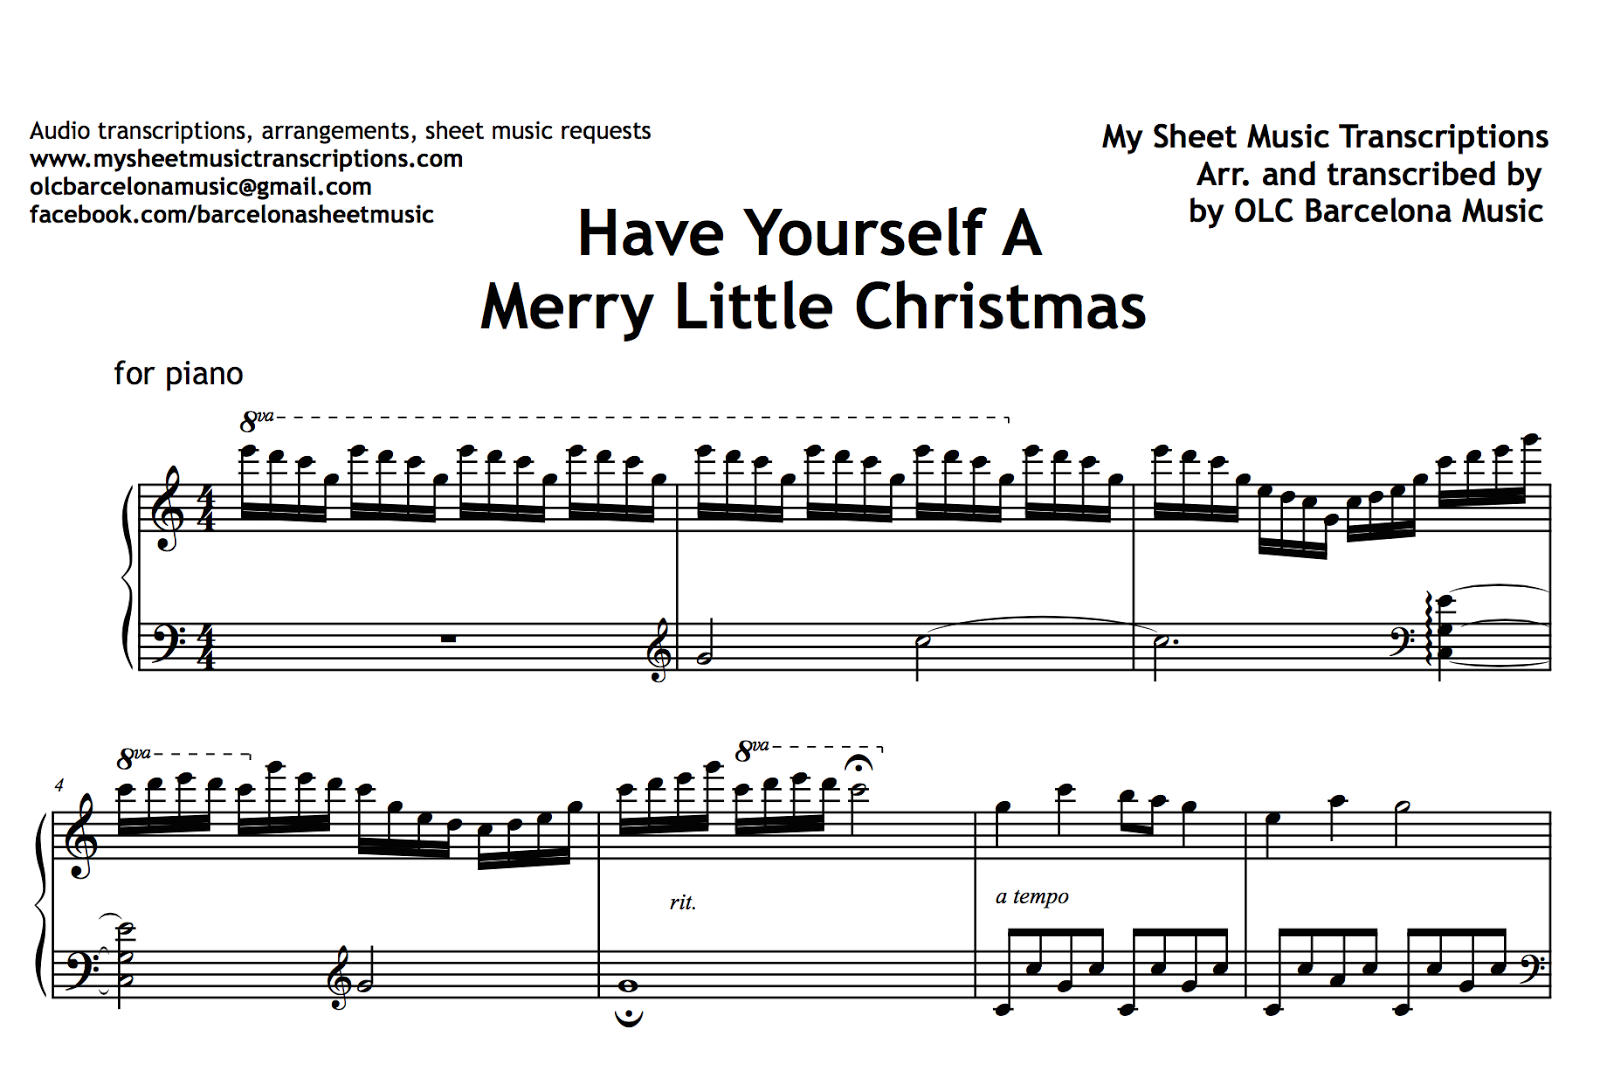 have yourself a merry little christmas sheet music pdf